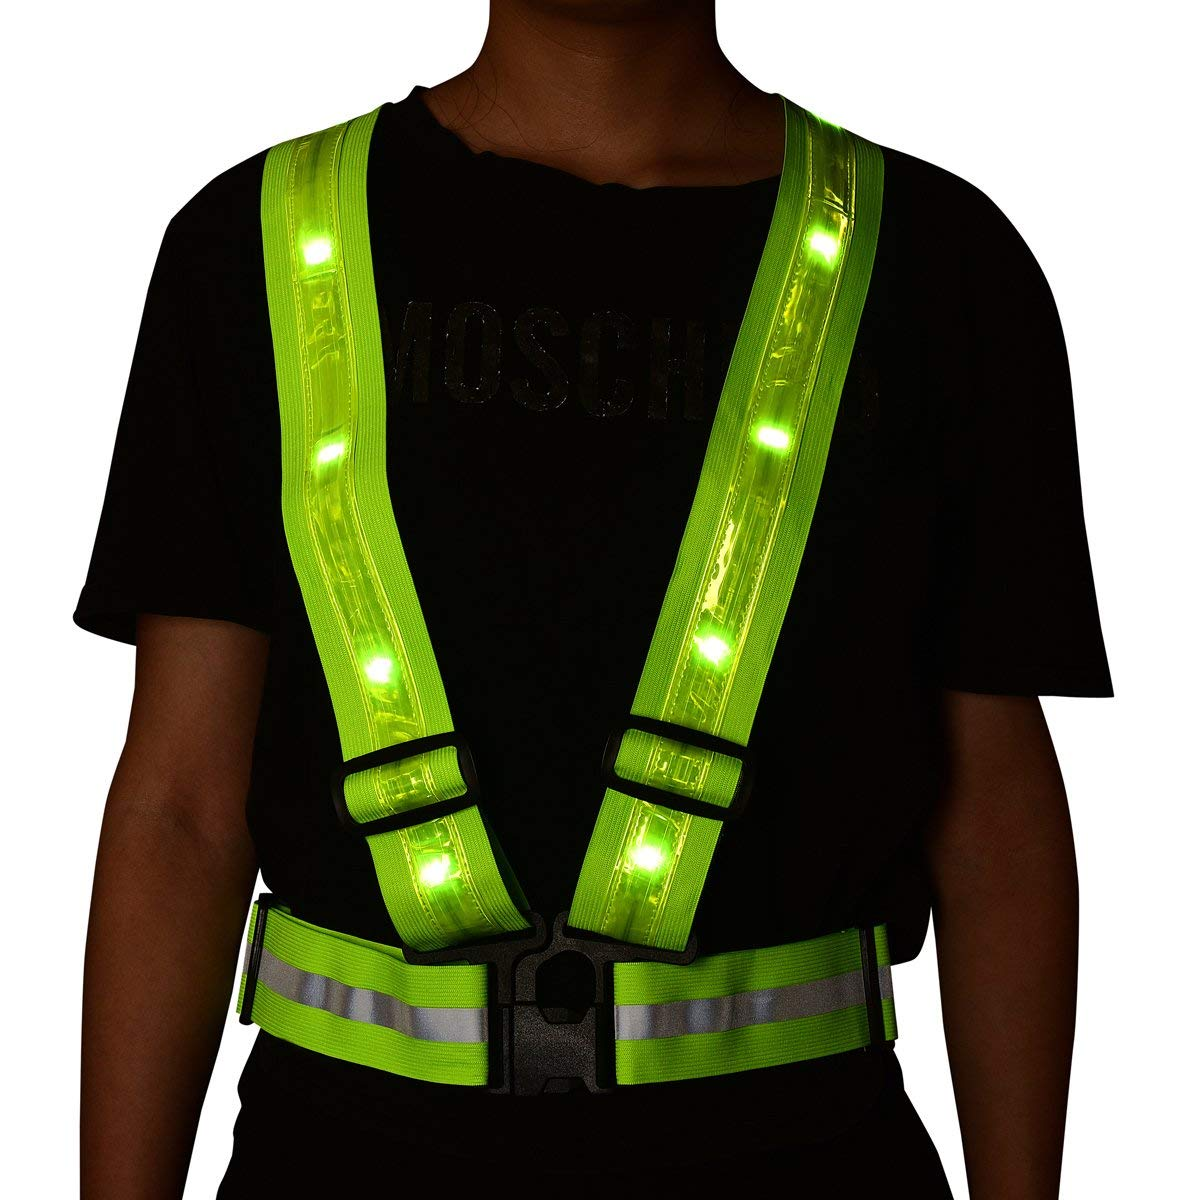 Led Glowing Suspenders Reflective Running Gear ShineU LED Reflective Safety Vest USB Charging Elastic Straps Adjustable Size Fit Women Men Kids Flashlight Warning for Outdoor Sport Running Cycling